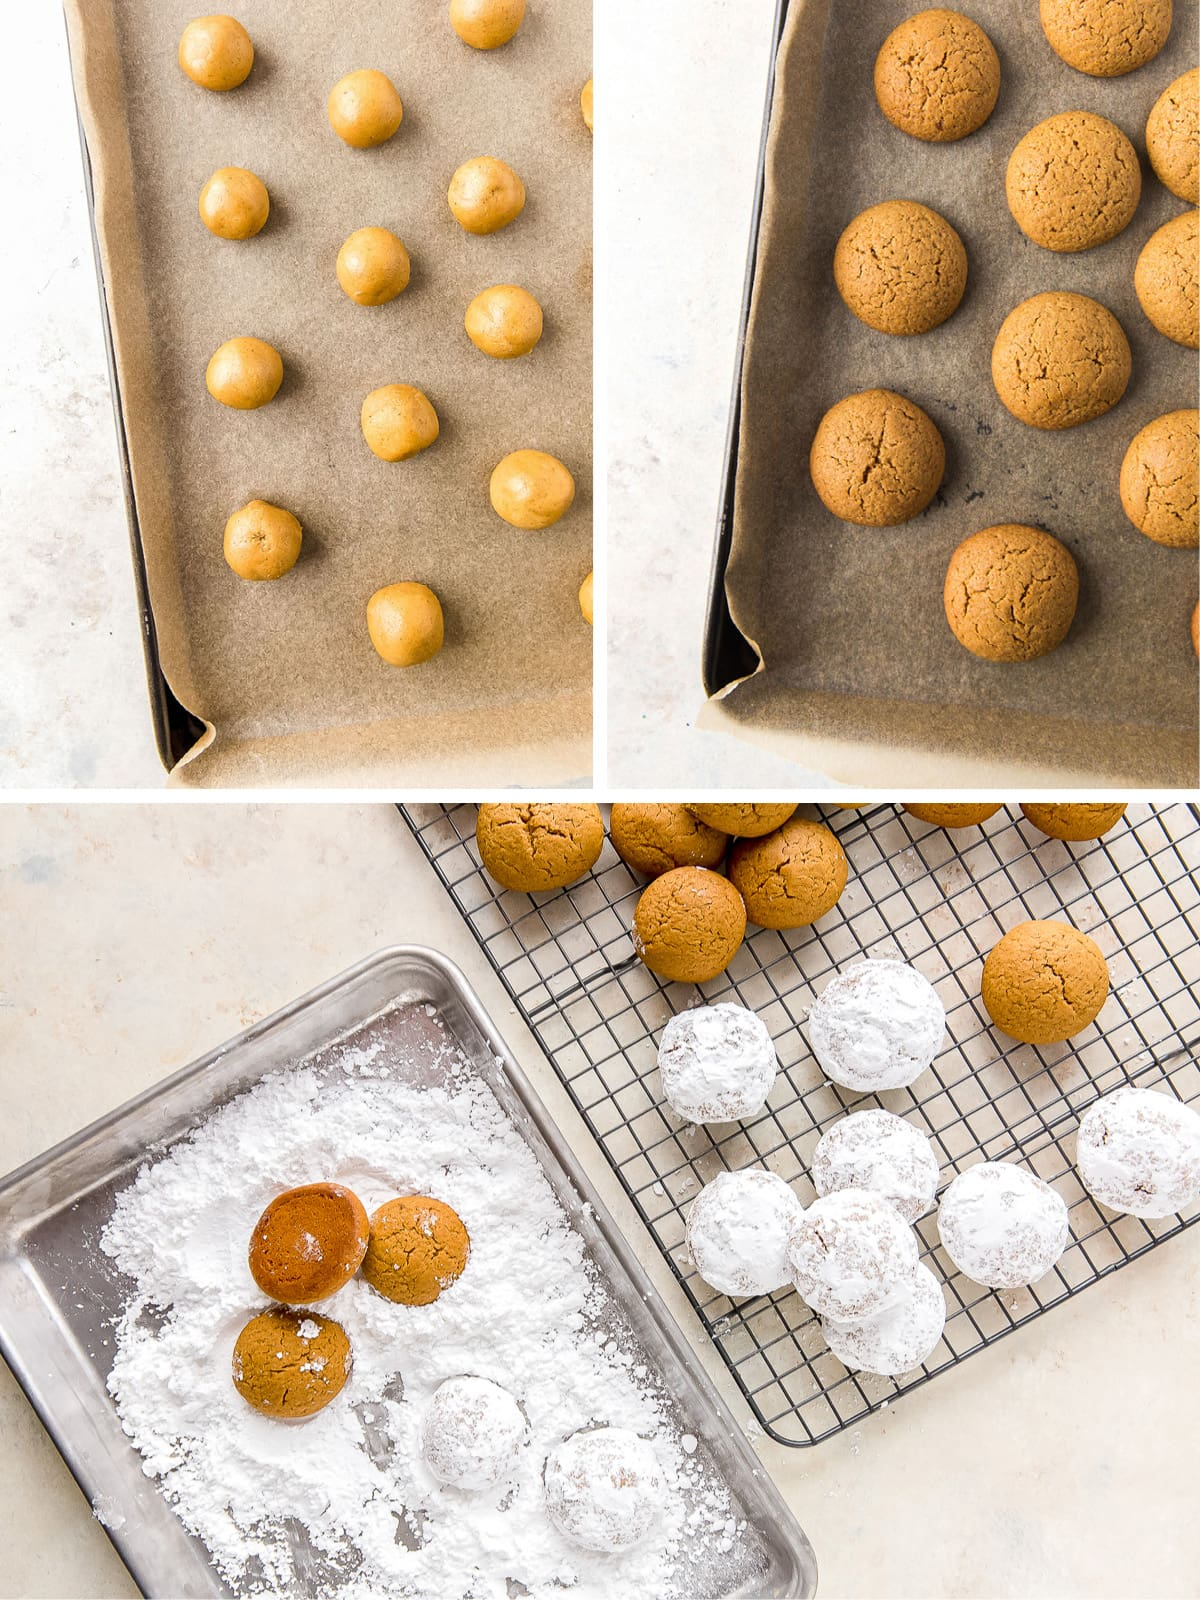 photo collage showing pfeffernusse before and after baking and coating in confectioners' sugar